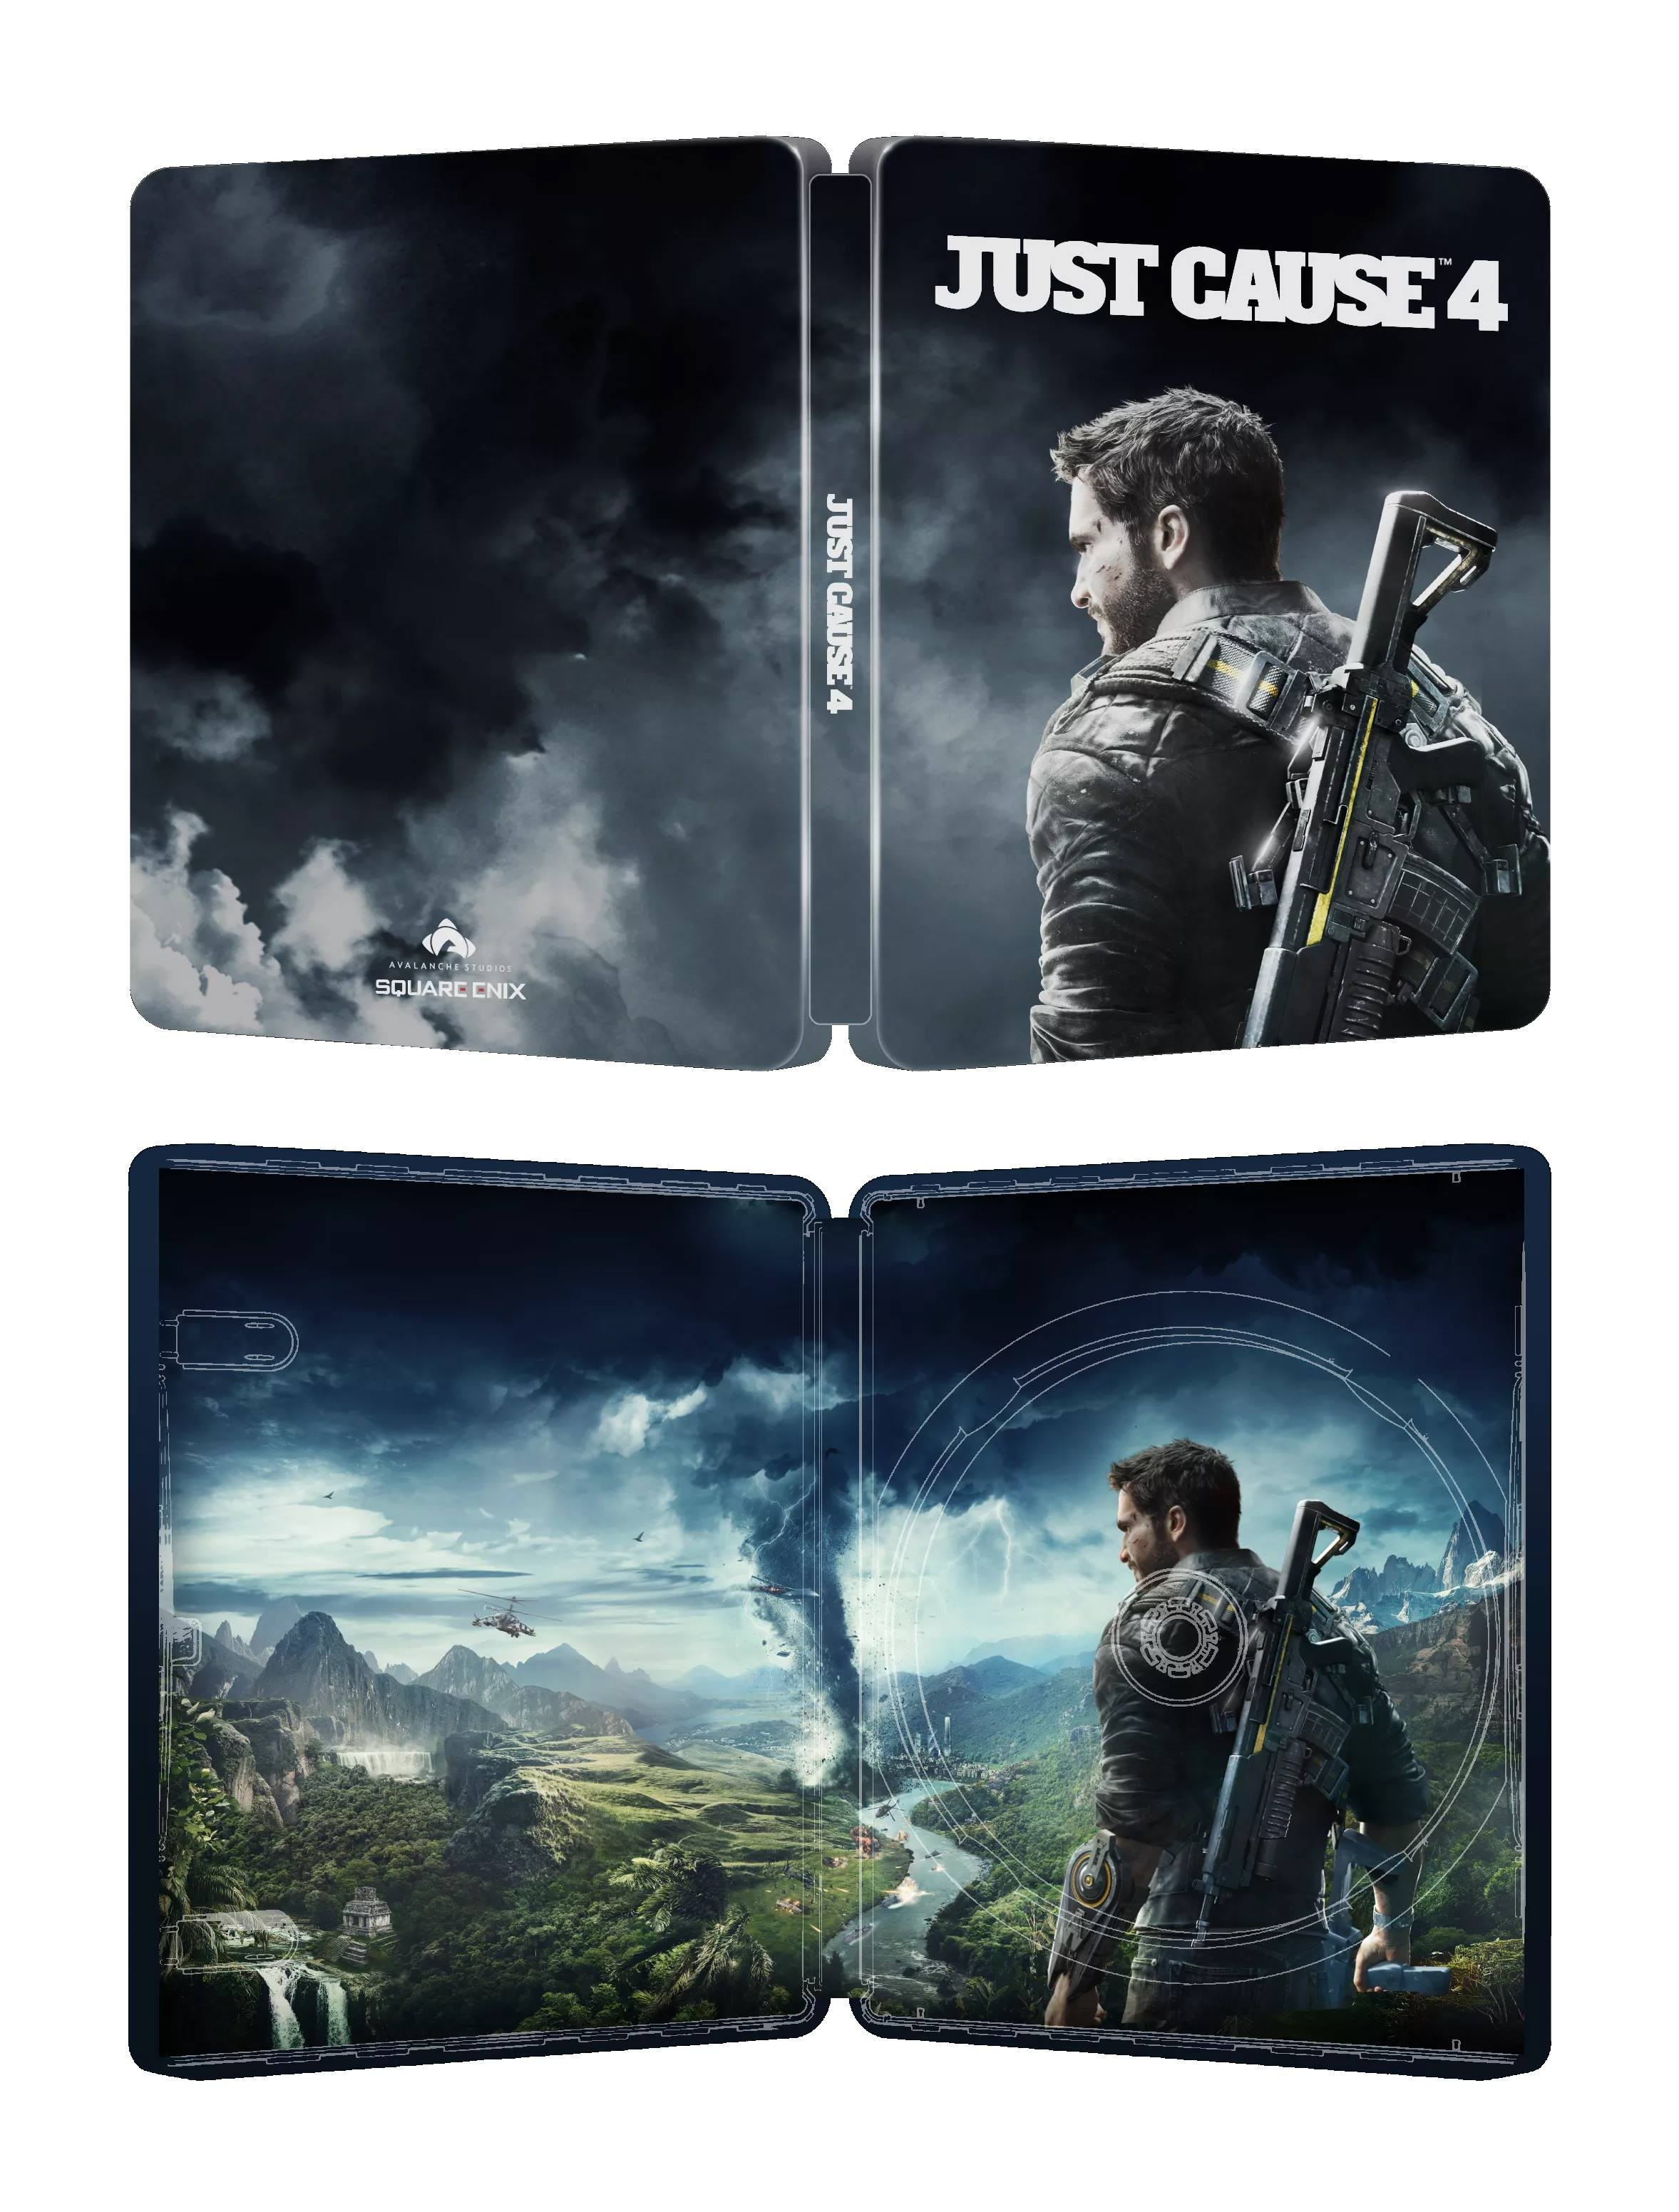 Just Cause 4 Steelbook Edition